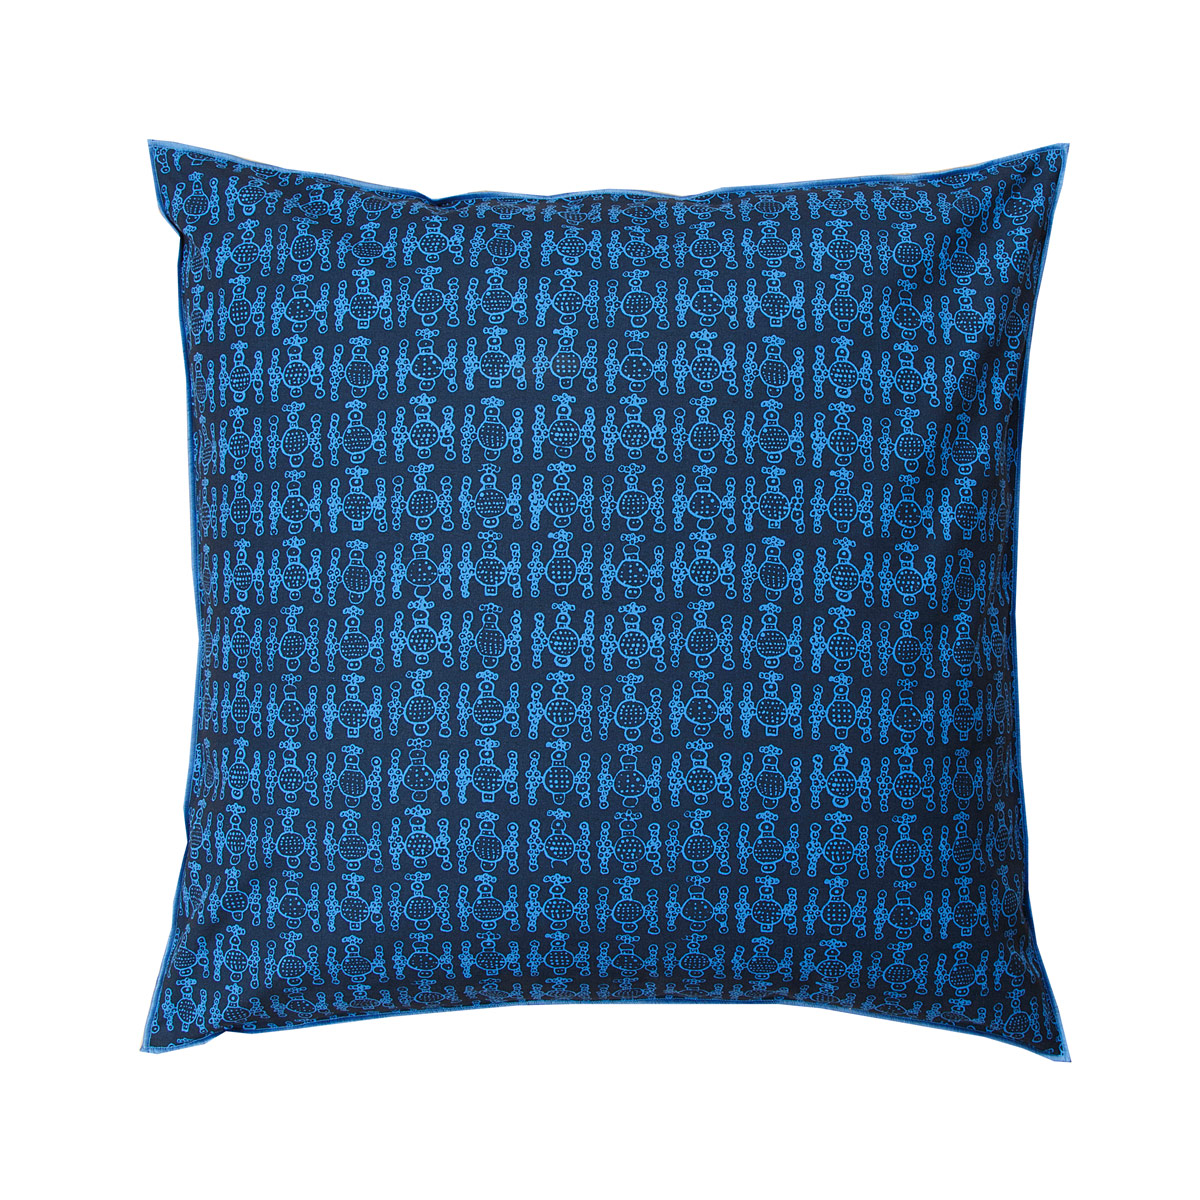 Decorative Pillows Blue : marimekko kuukuna blue throw pillow - 28 images - marimekko kuukuna blue throw pillow marimekko ...